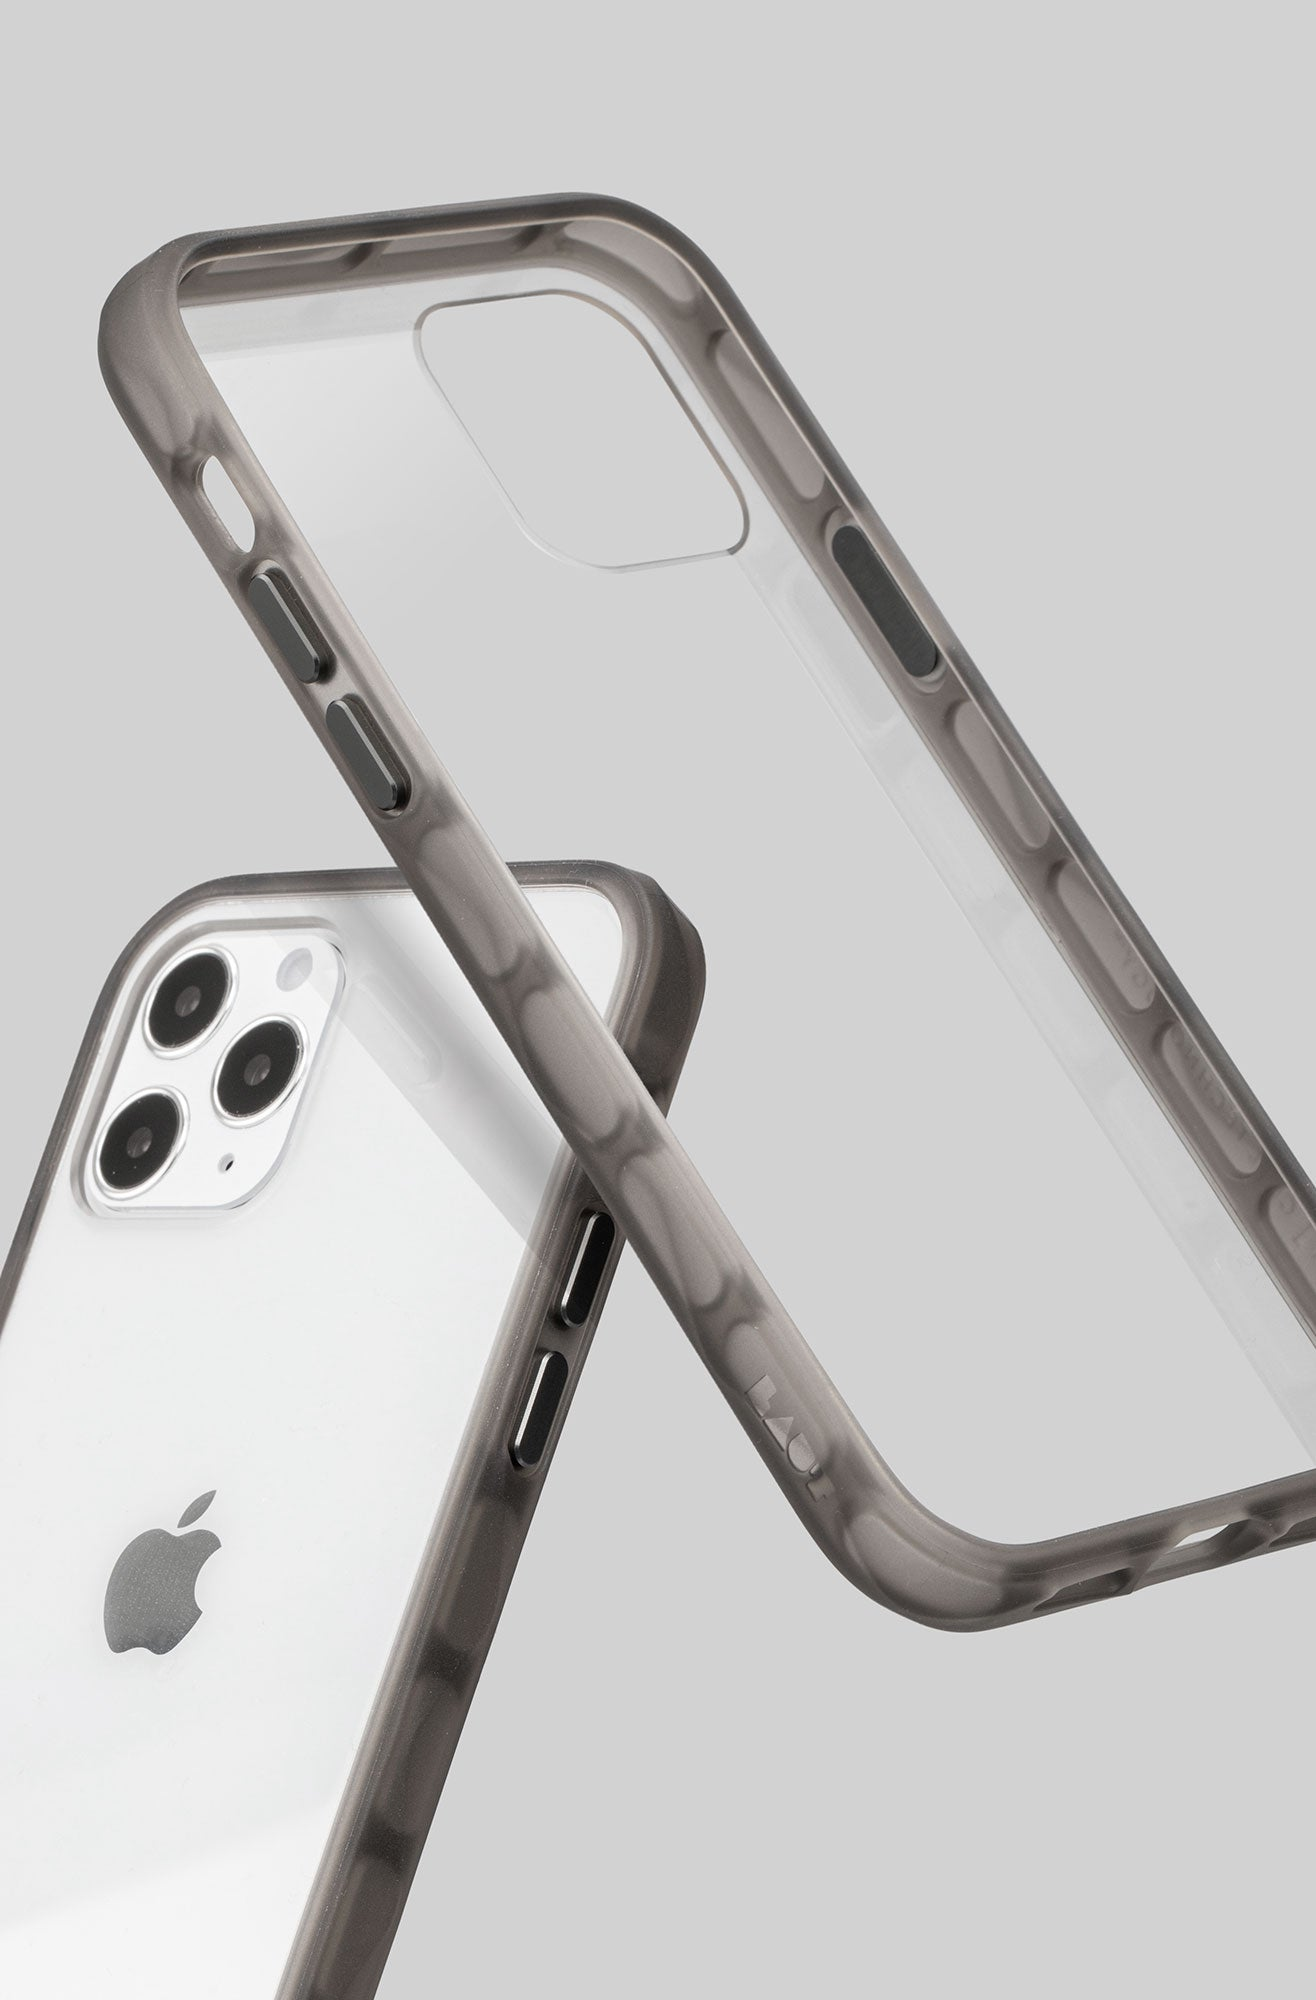 LAUT - CRYSTAL MATTER (IMPKT) - TINTED SERIES case for iPhone 12 series